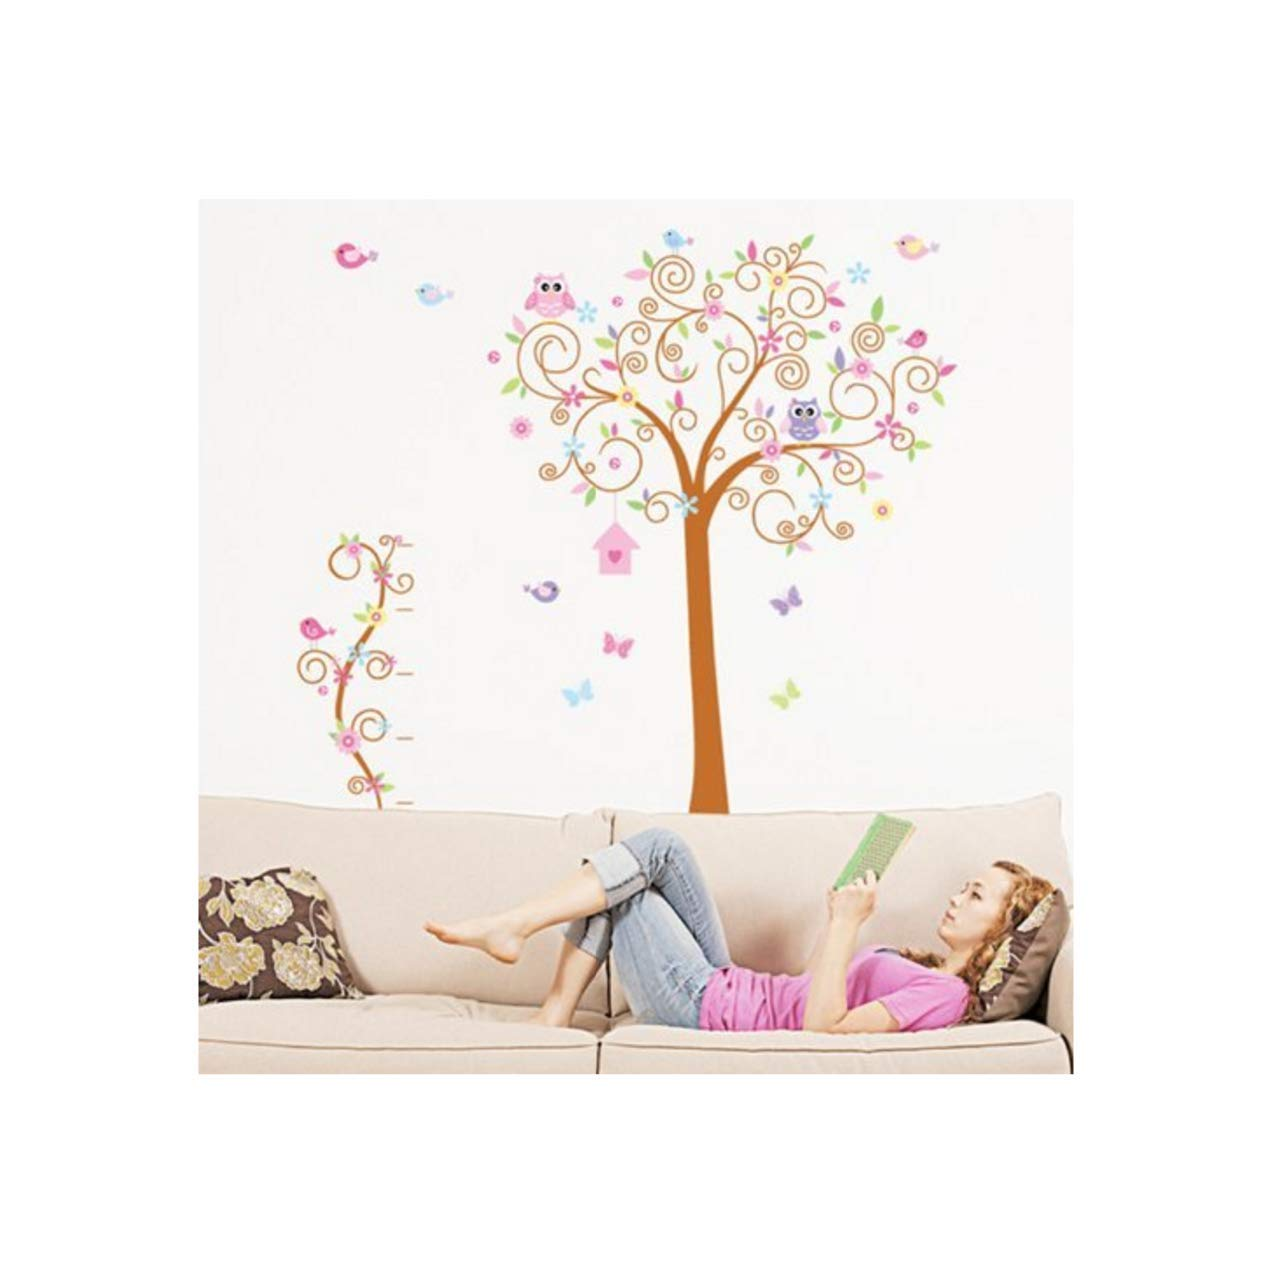 Domire Owls Birds Flower Tree Growth Chart Height Chart Wall Decal Decor Sticker Removable Wall Decal For Baby Boys and Girls Nursery Children's Bedroom Kids Room Stickers Home Decor